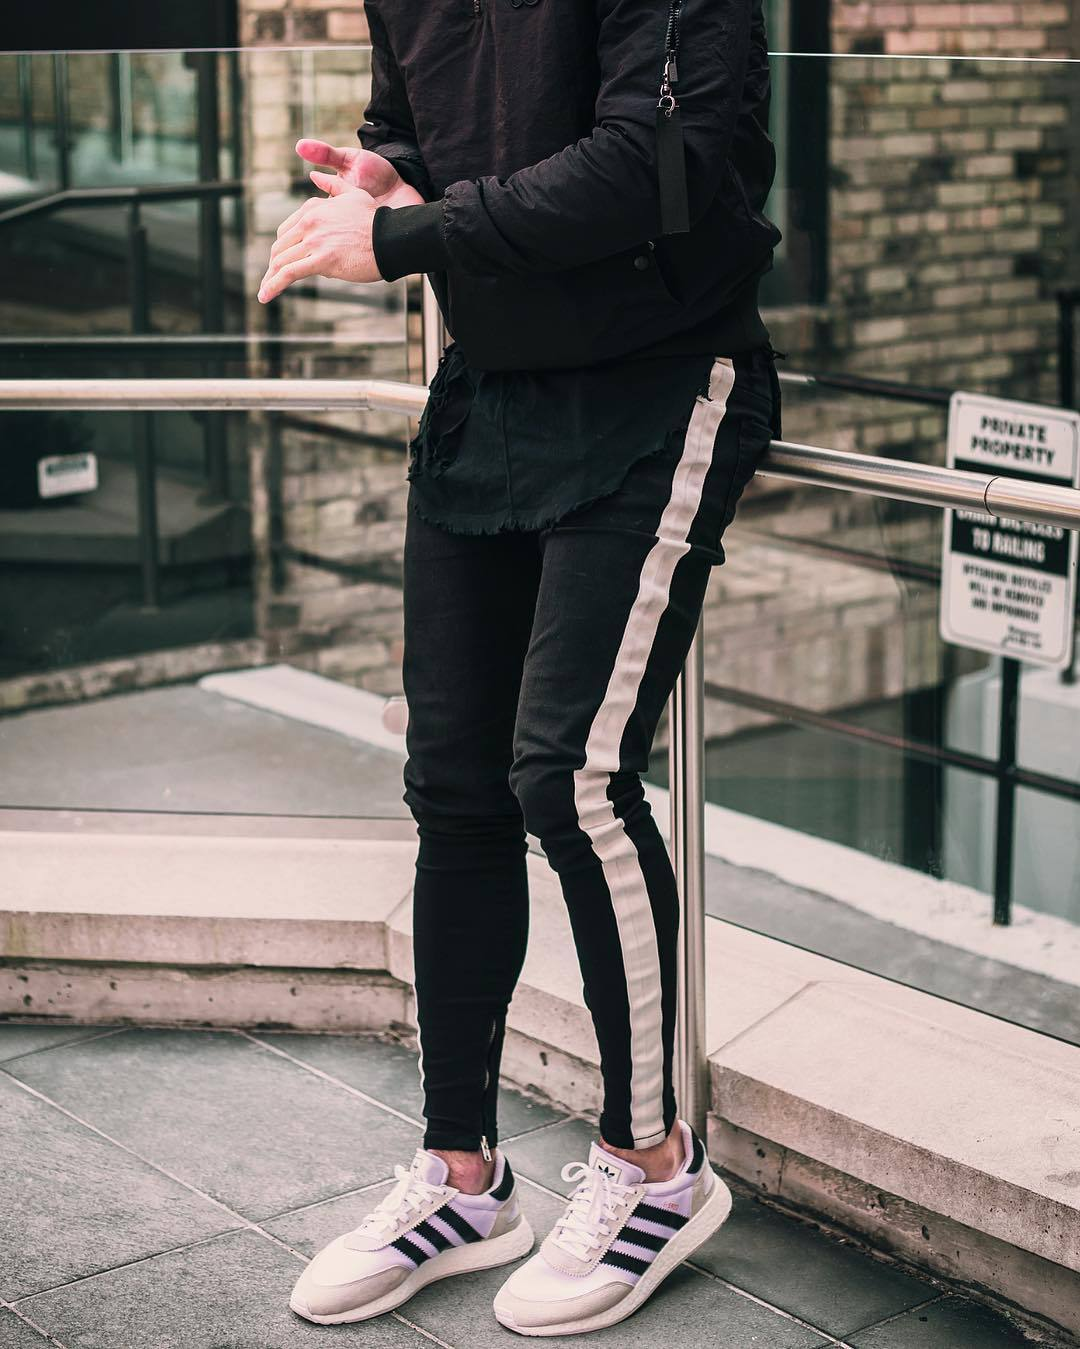 New Style Men's Skinny Jeans Black And White With Pattern Casual Slim Fit Zipper Skinny Pants Men In Key Western Station